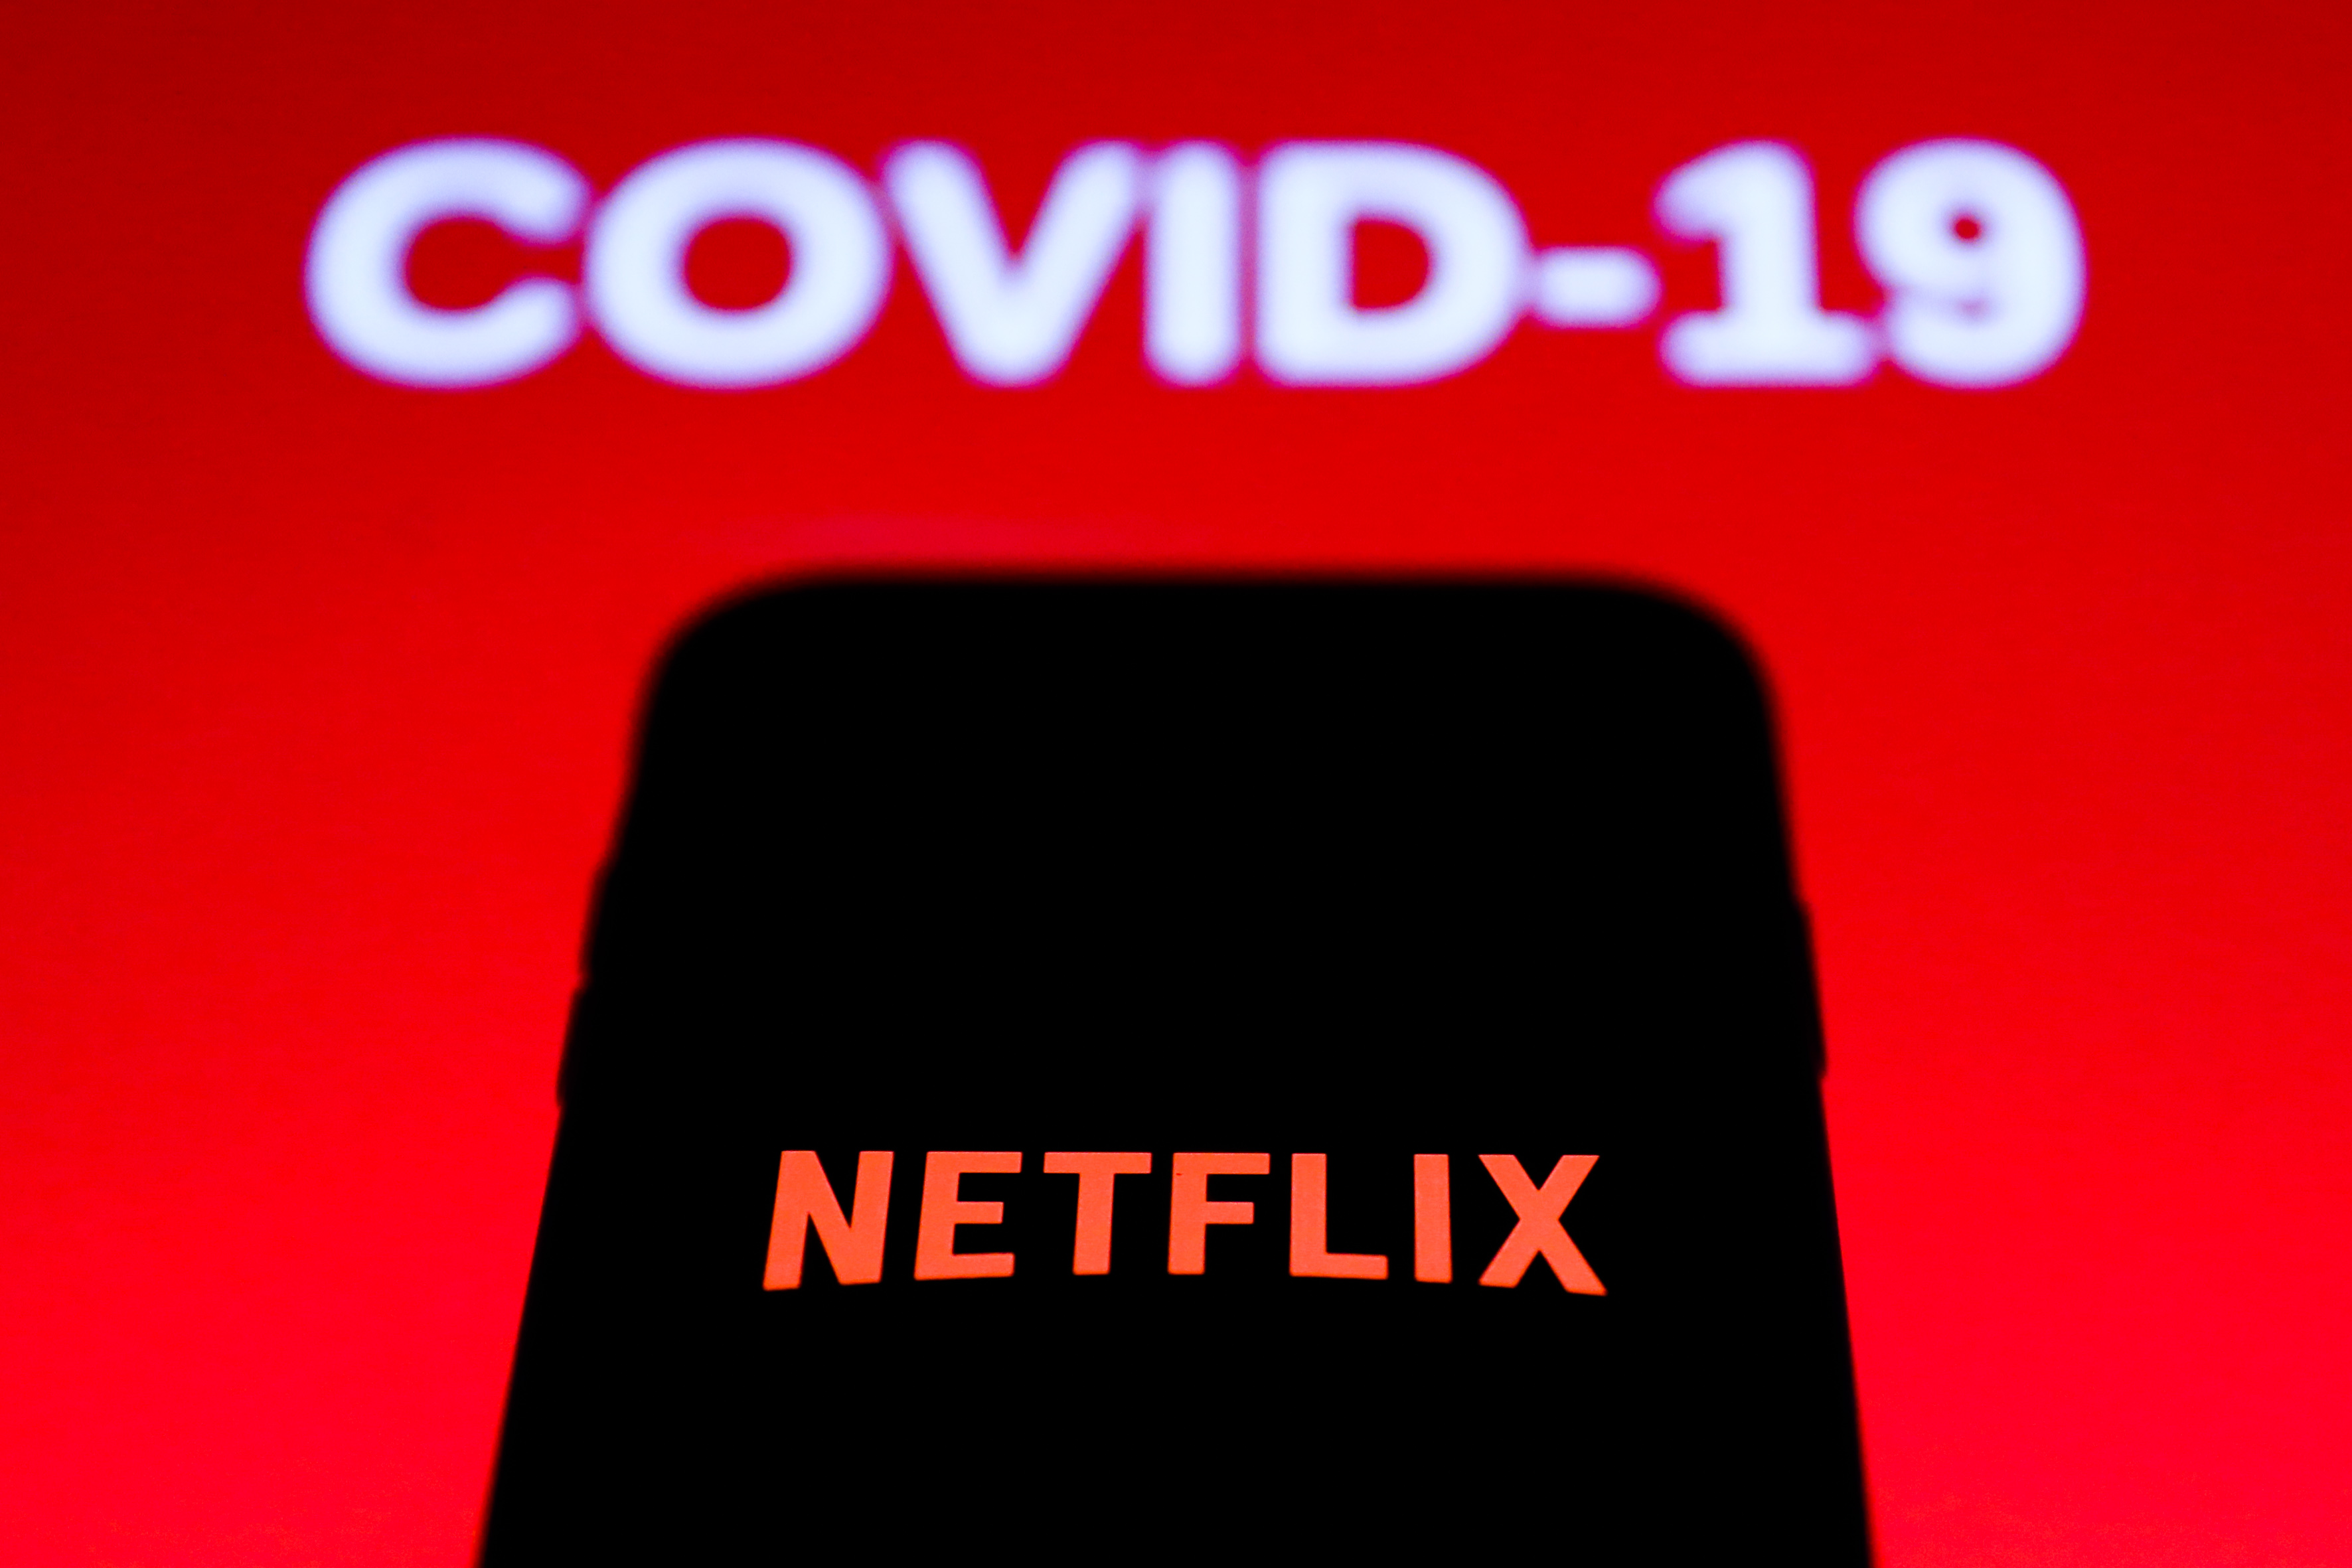 Netflix Stock Rebounds as Streaming Traffic Hits New High on AT&T Networks